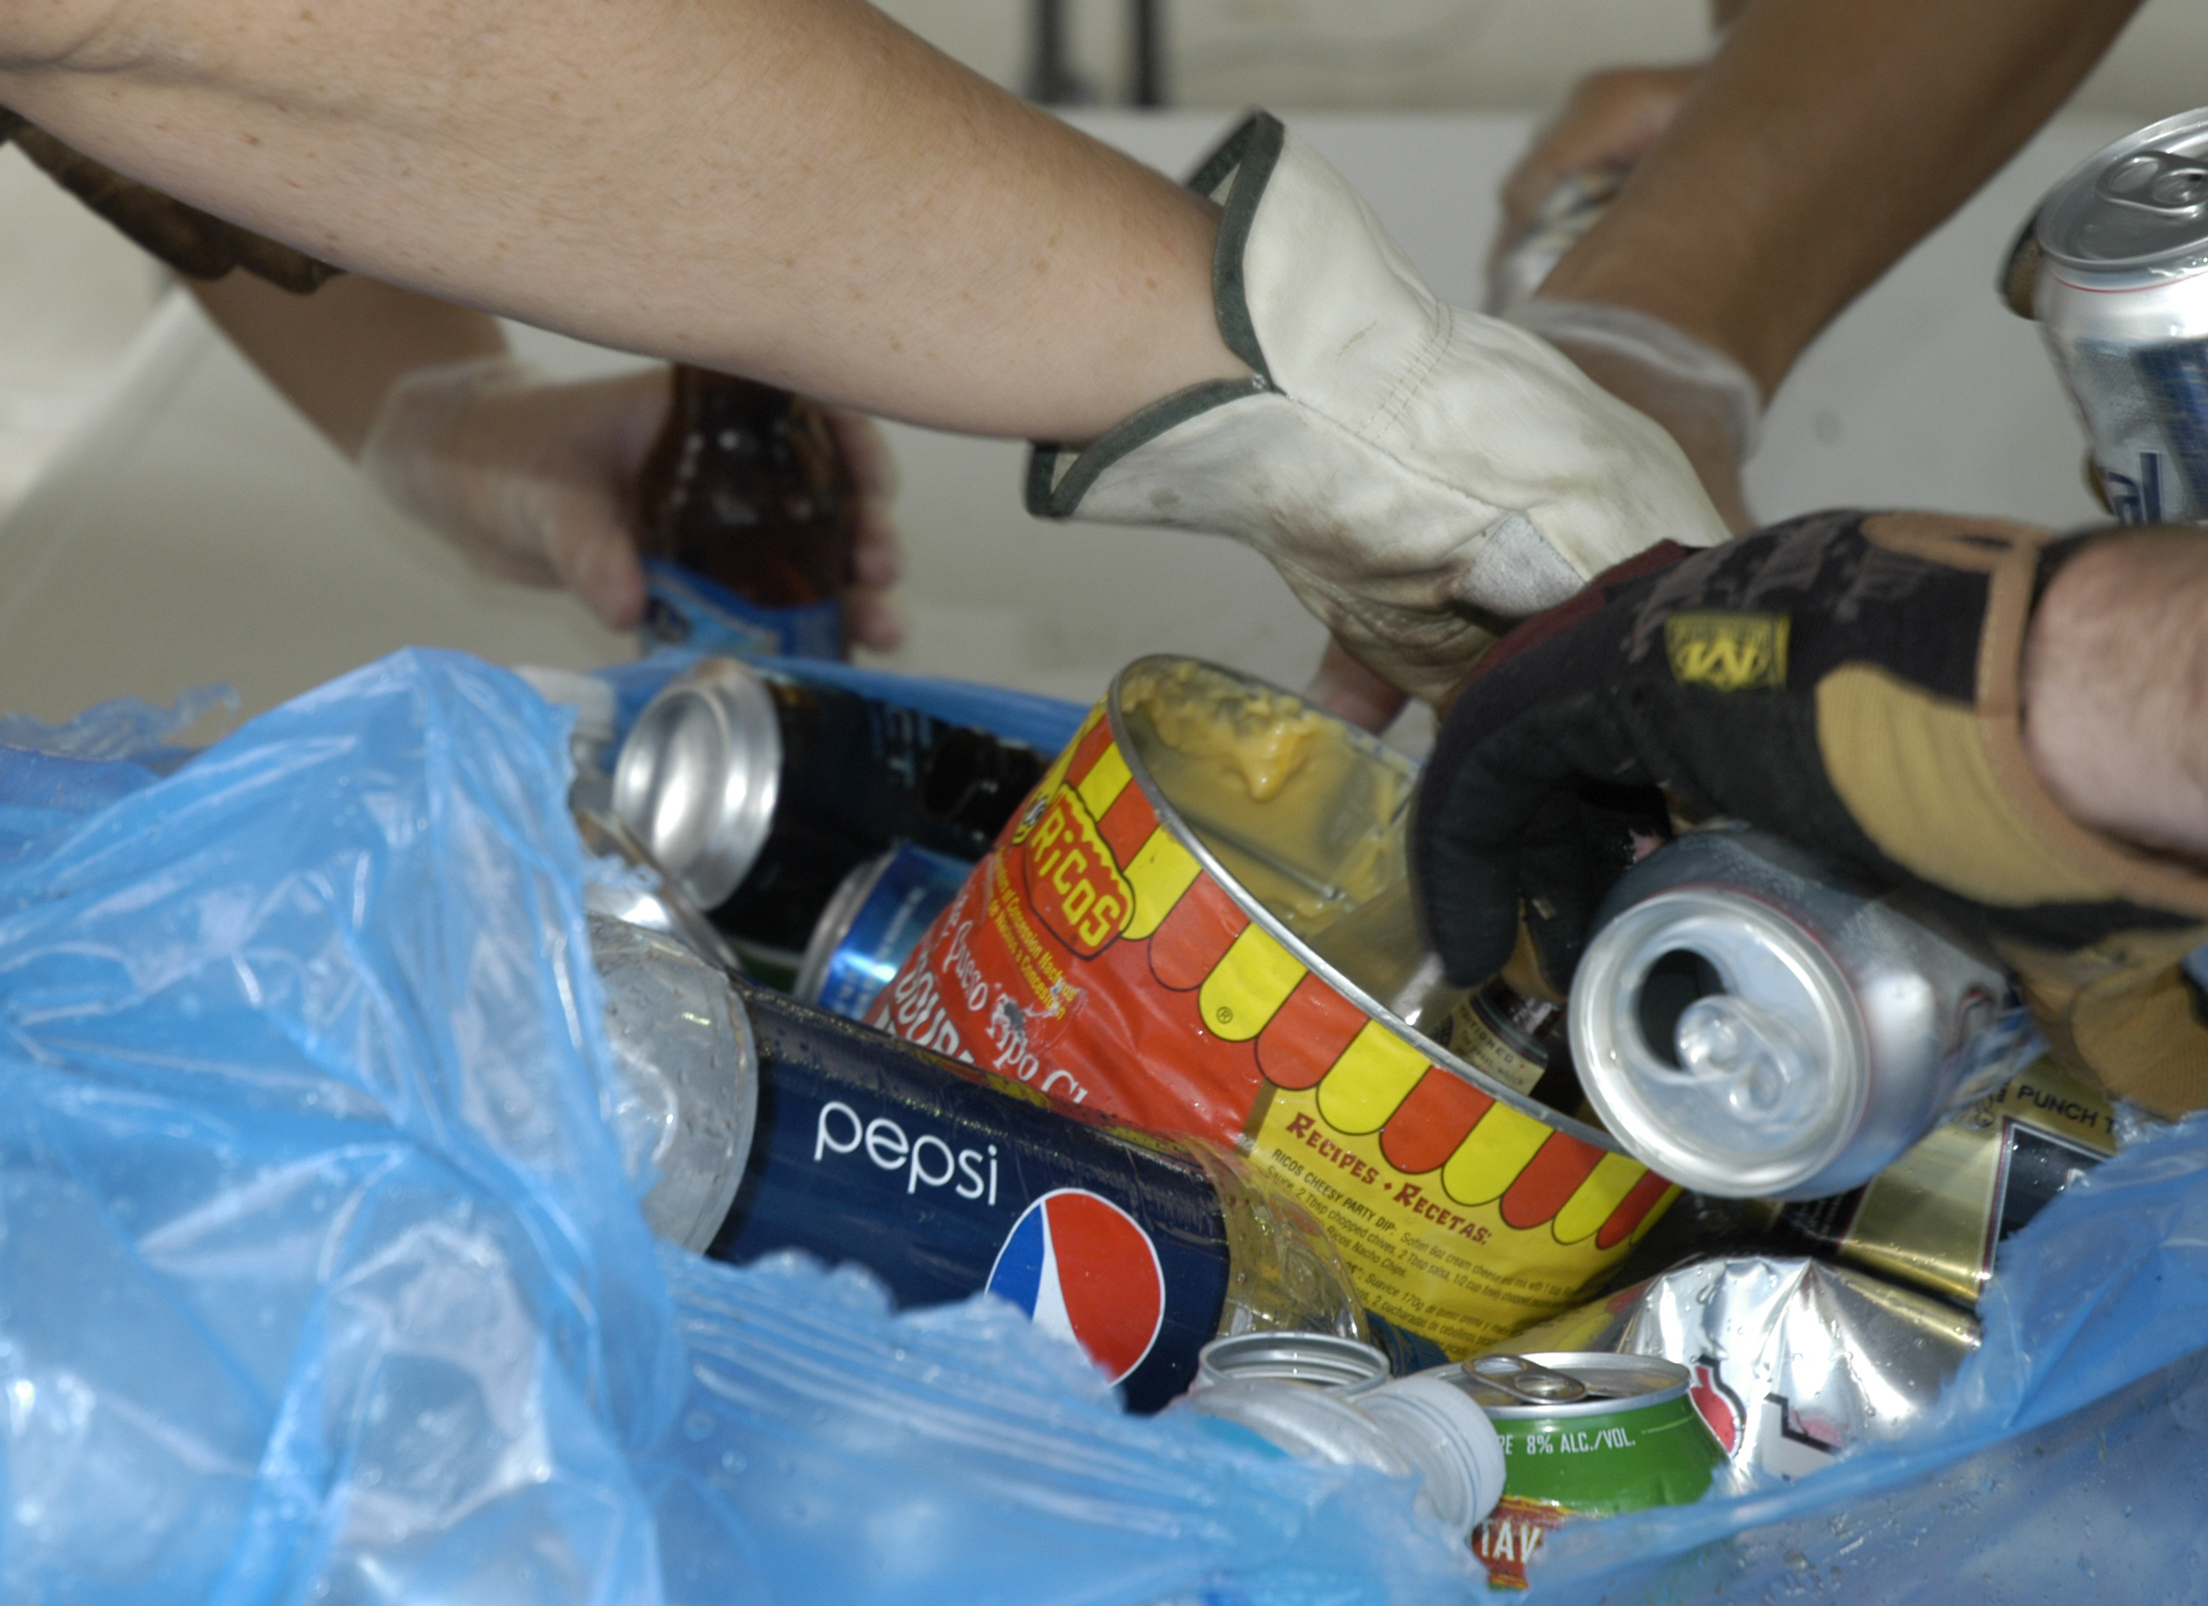 Students opened 86 trash bags and separated recyclable from nonrecyclable refuse.